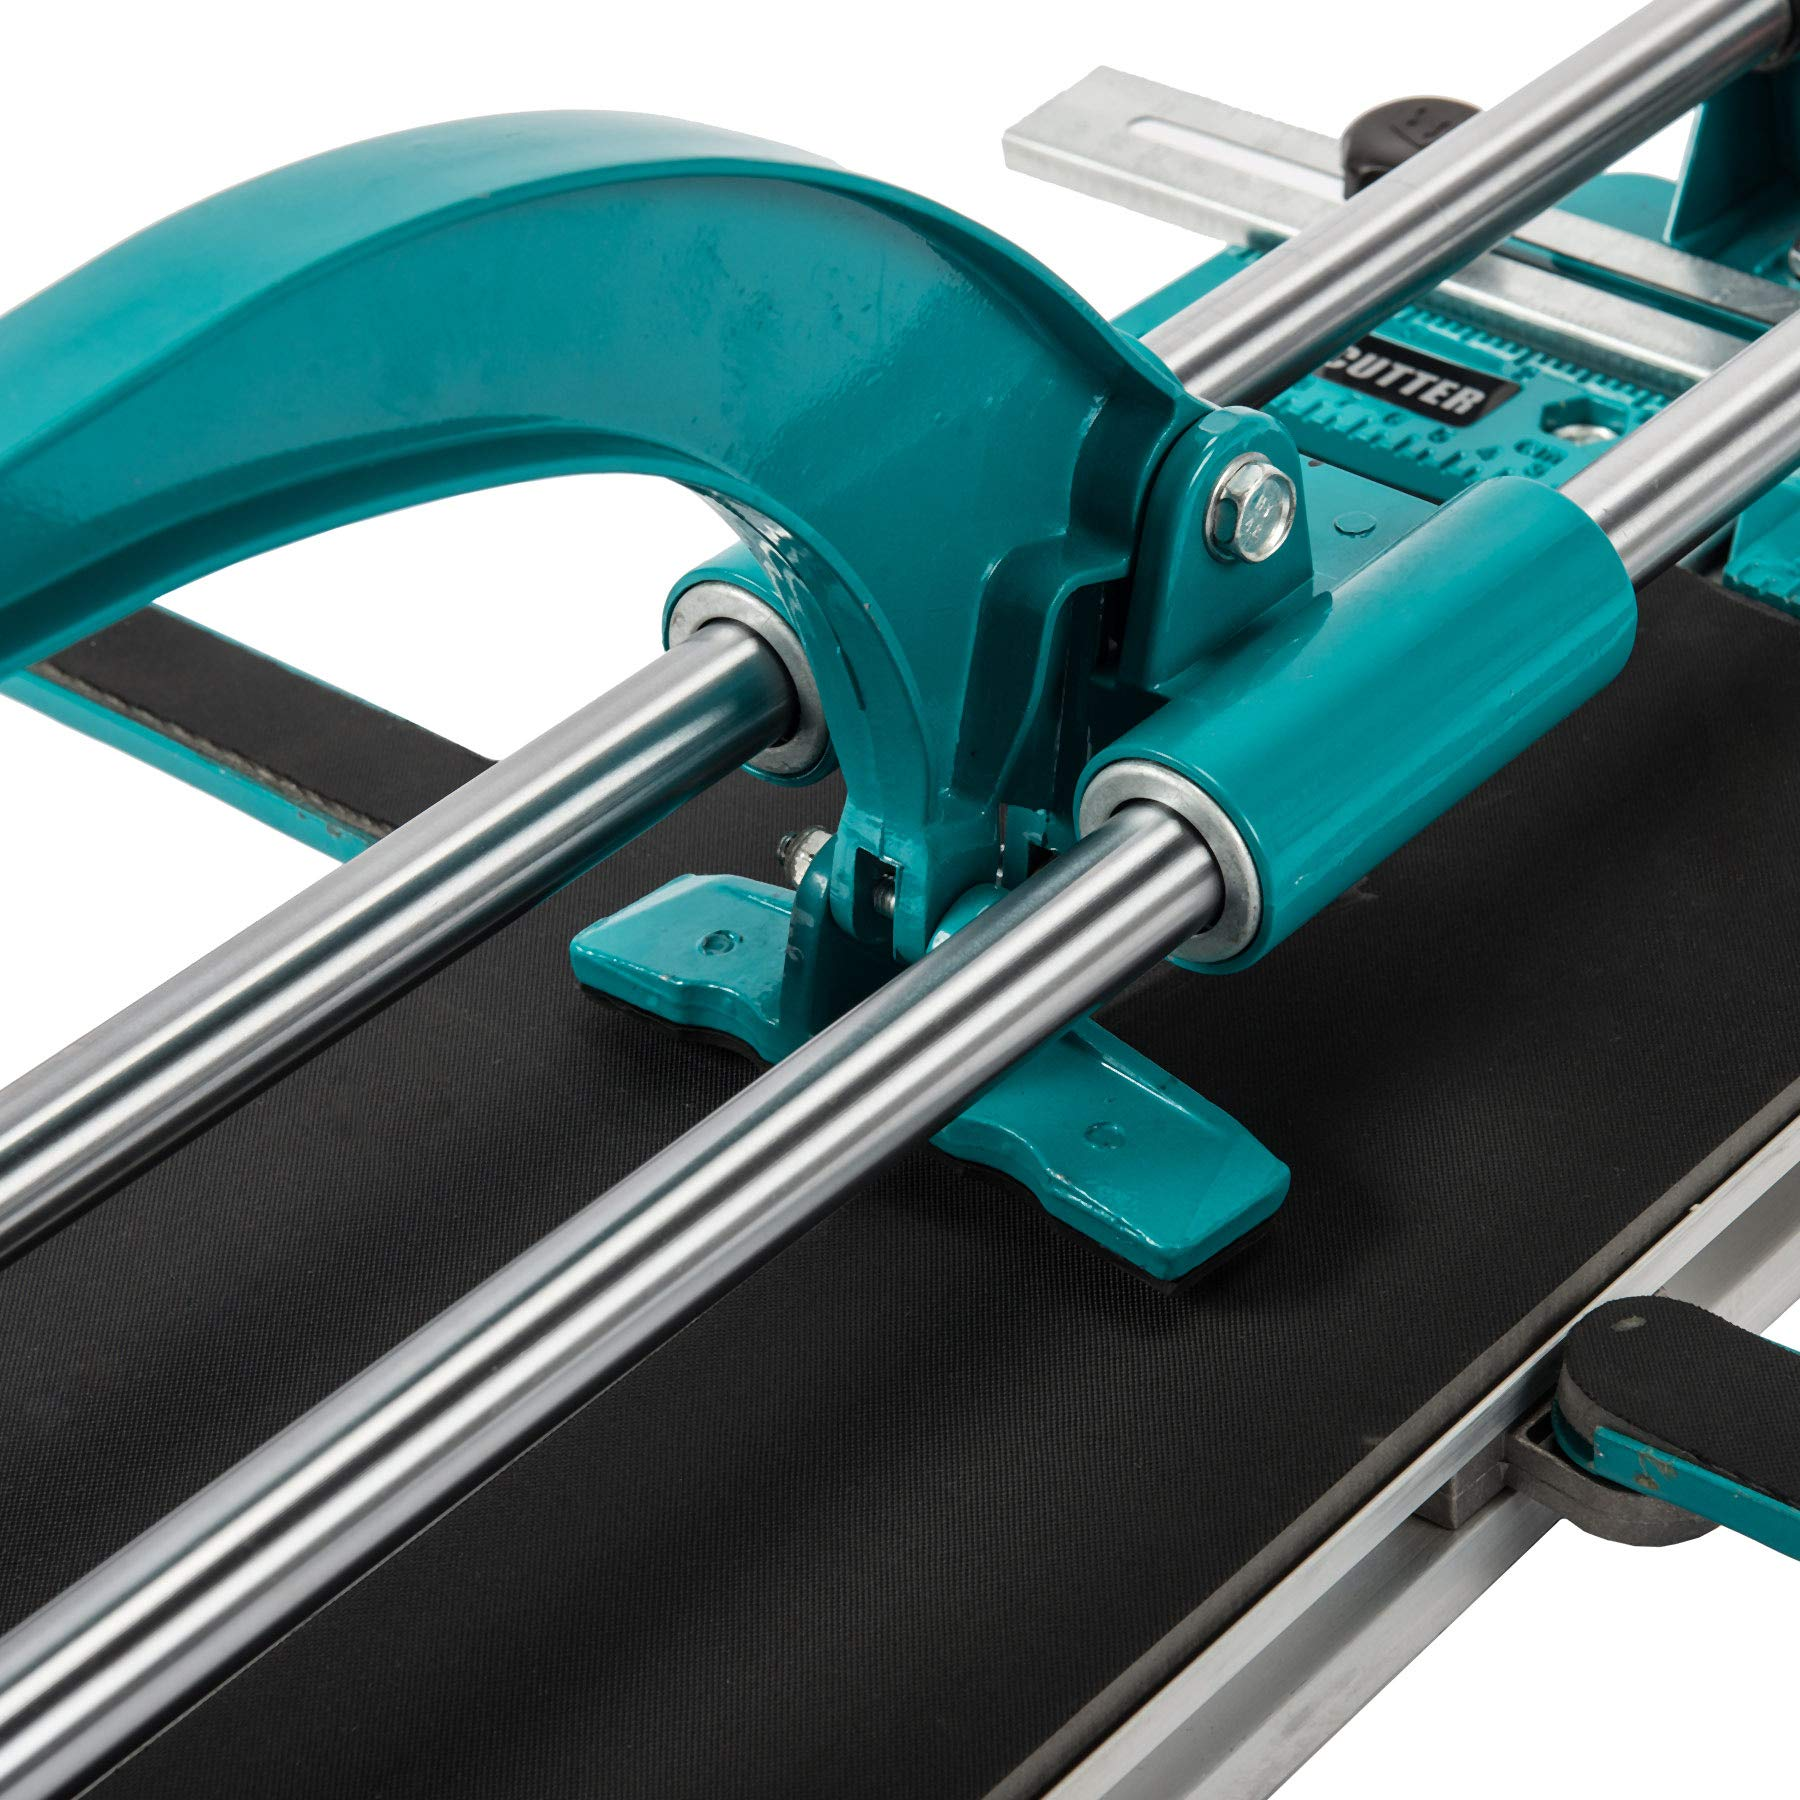 CO-Z Manual Tile Cutter 40'' Cutting Length Professional Porcelain Ceramic Floor Tile Cutter Machine Adjustable Laser Guide for Precision Cutting (40 inch) by CO-Z (Image #7)